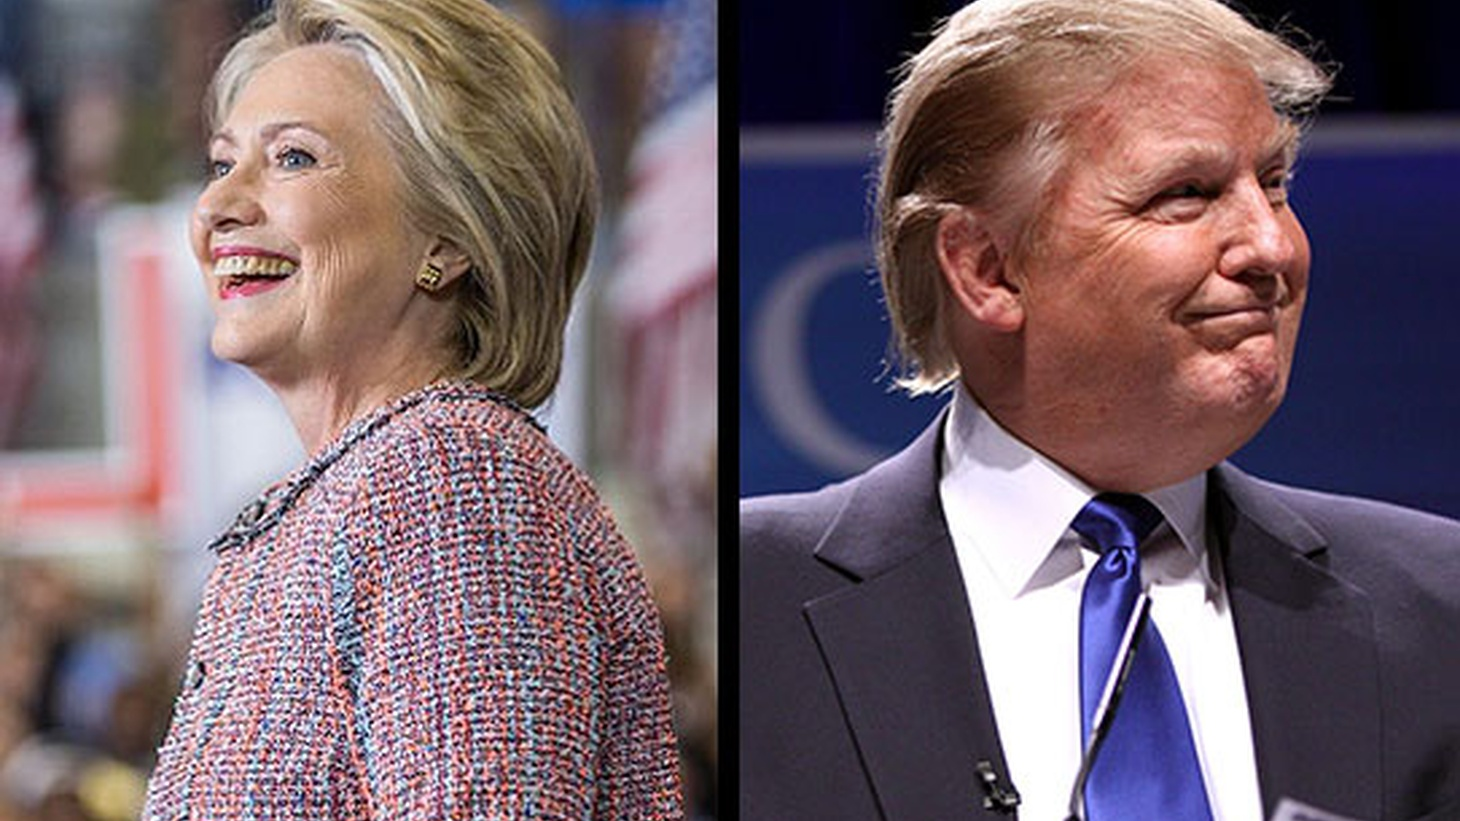 With so little time left until all the voters have gone to the polls, both presidential candidates are doing what they think they need to do. Reporters embedded with the Clinton and Trump campaigns will tell us what to look for.